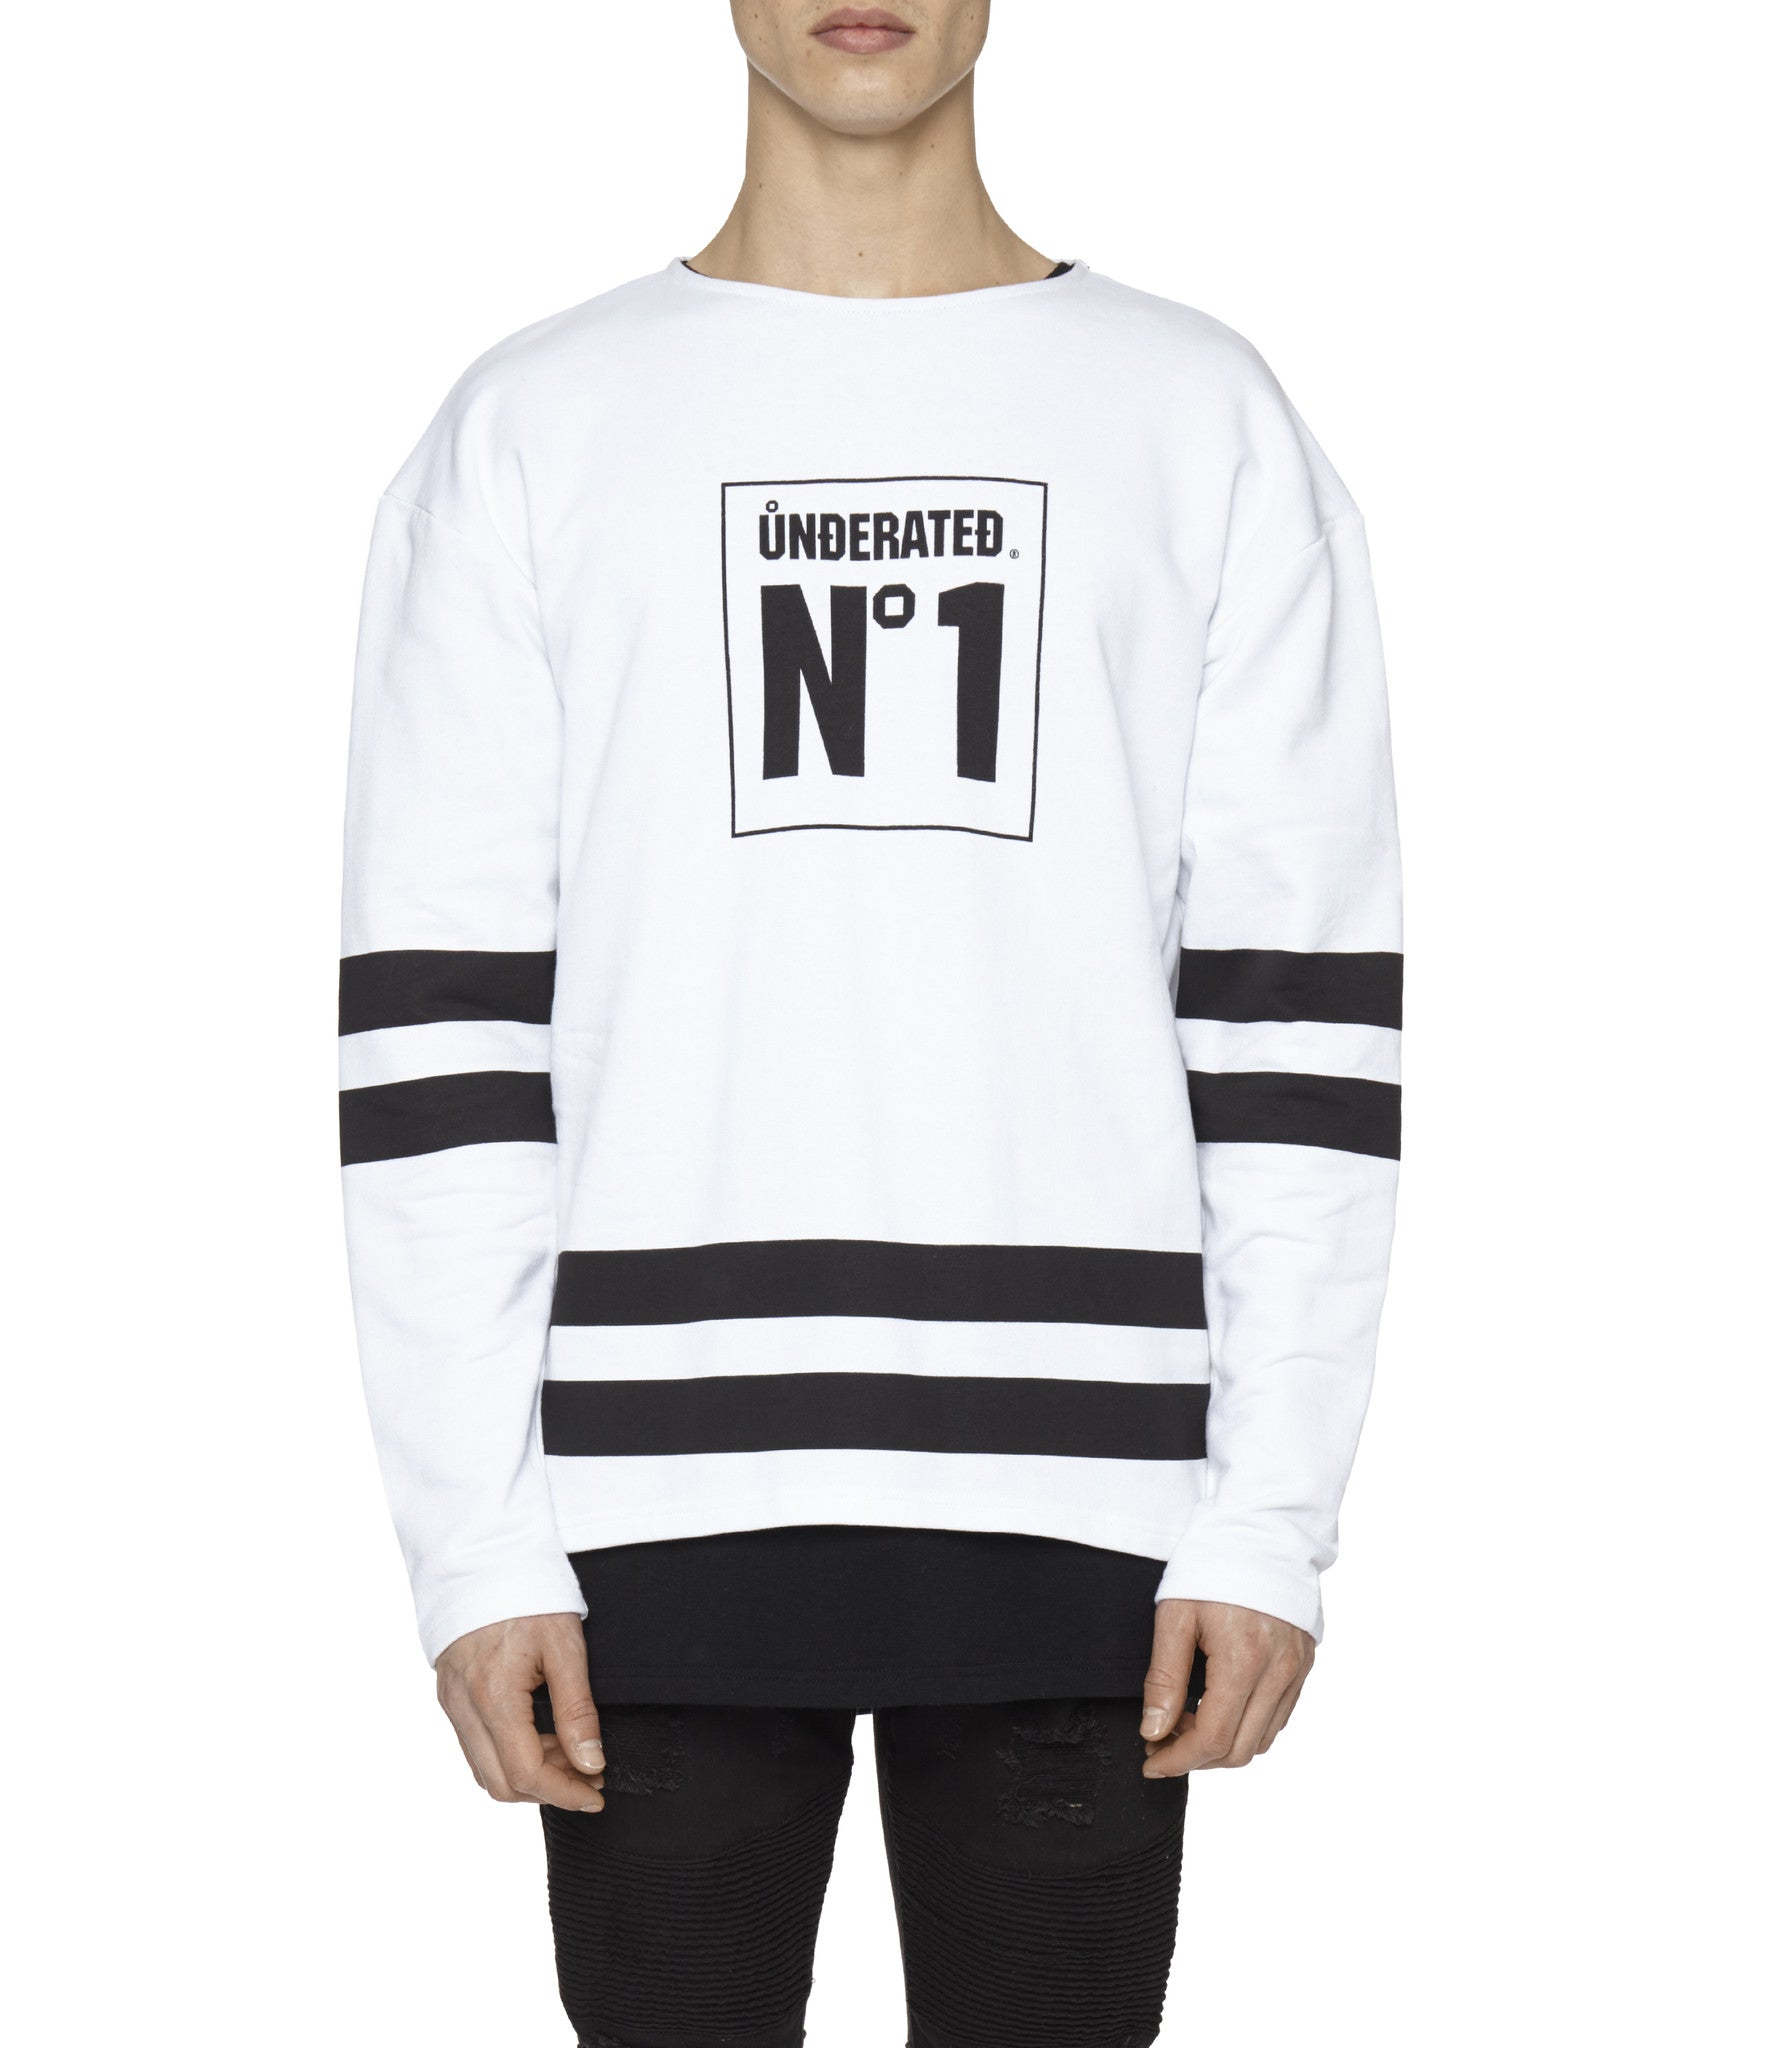 SW313 No.1 Printed Sweatshirt - White - underated london - underatedco - 5